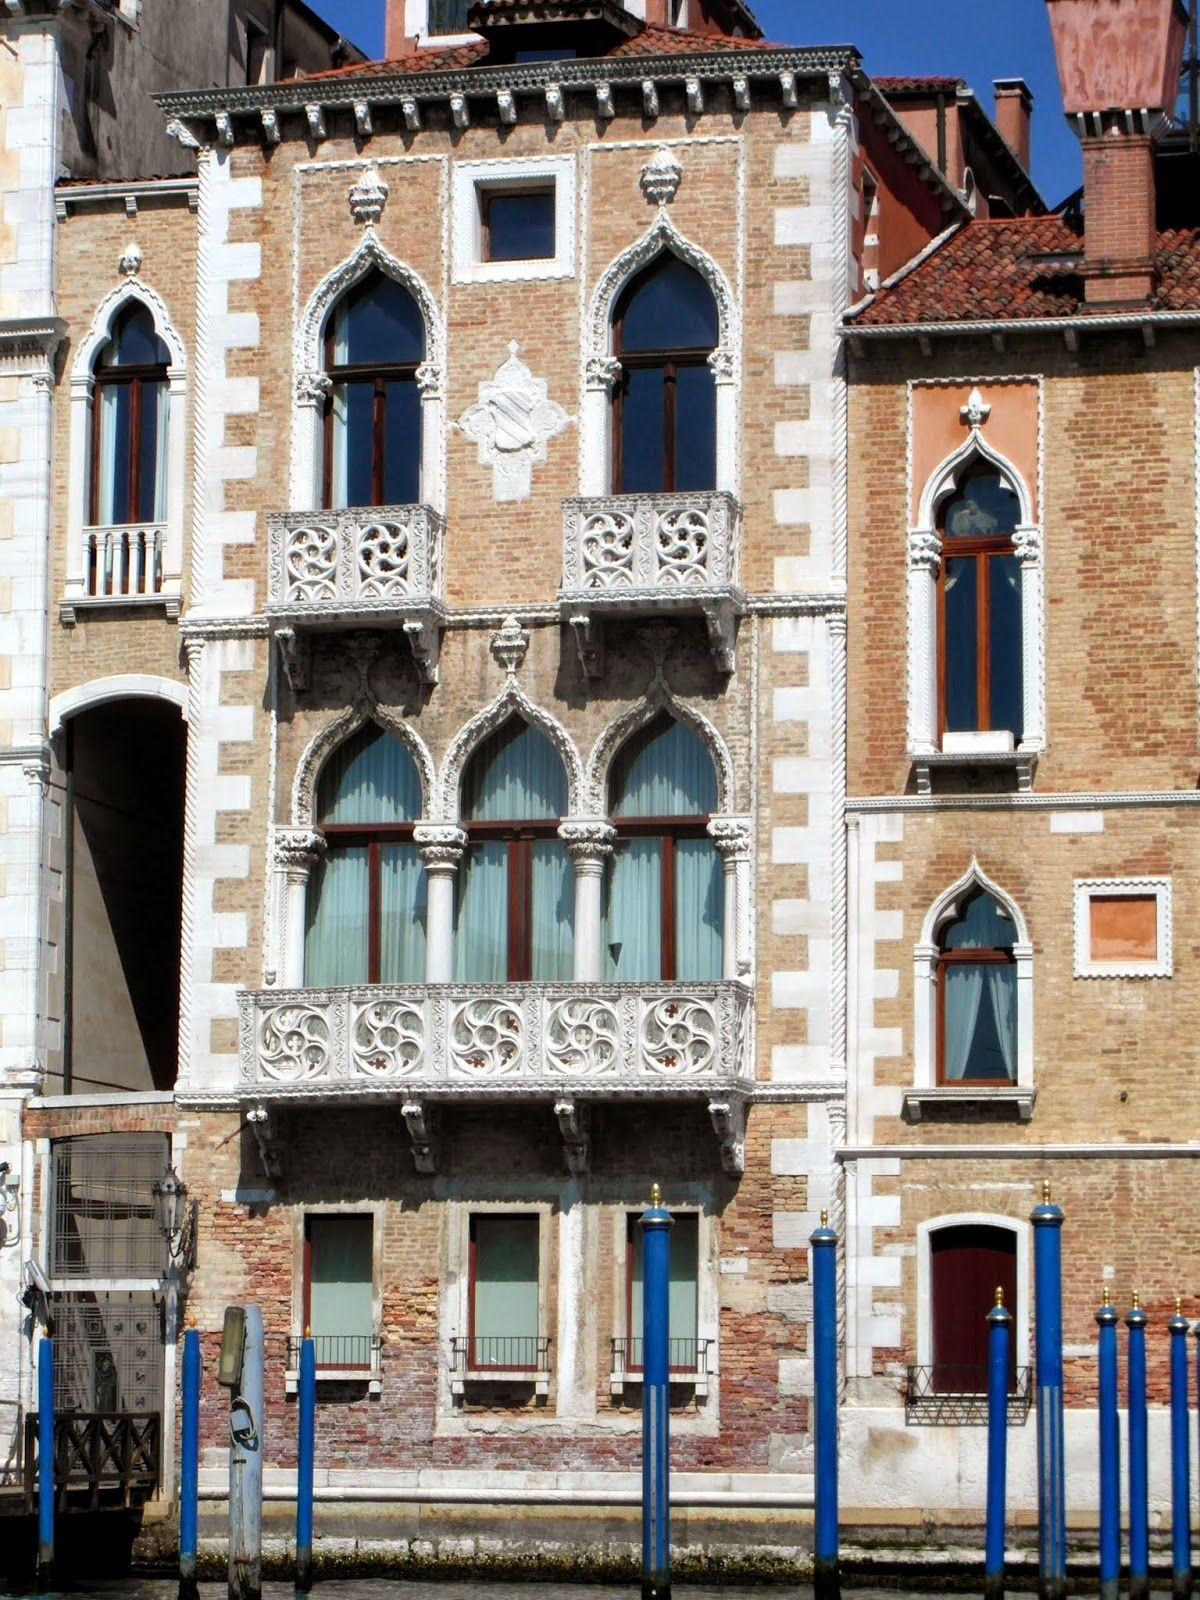 Venice Blog: The Palace of Desdemona